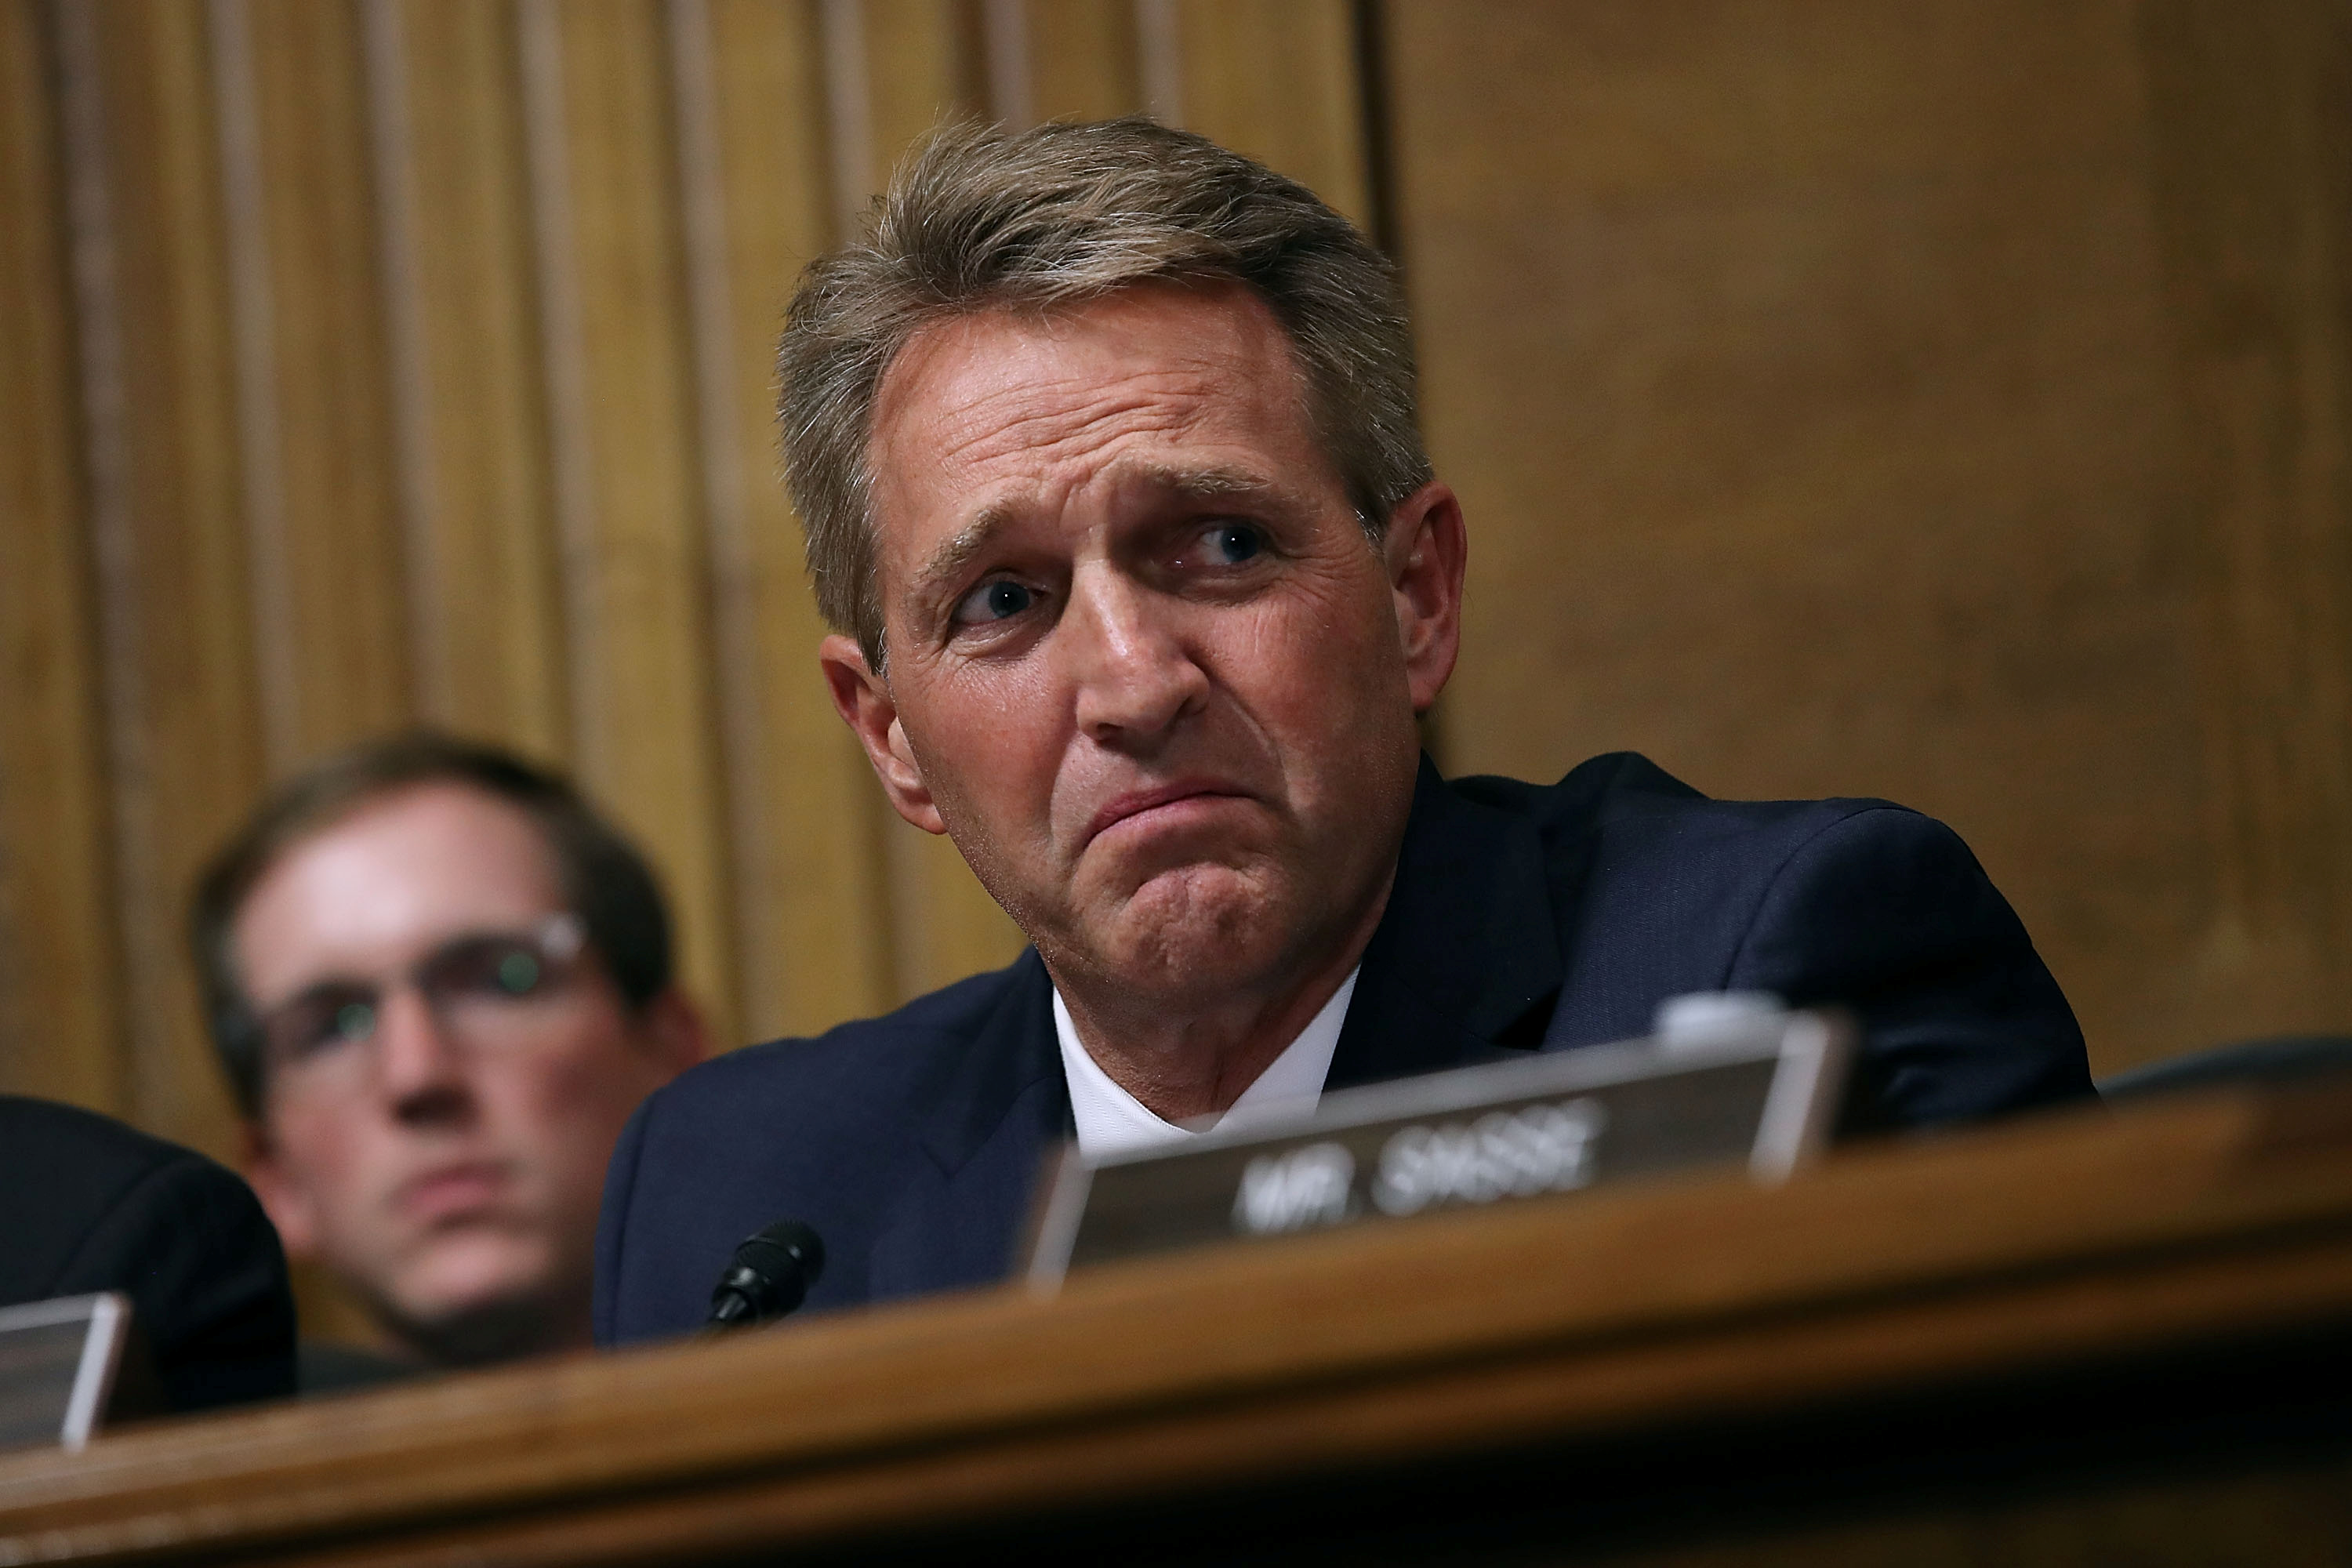 Senate Judiciary Committee member Sen. Jeff Flake (R-AZ) questions Judge Brett Kavanaugh during his Supreme Court confirmation hearing in the Dirksen Senate Office Building on Capitol Hill in Washington